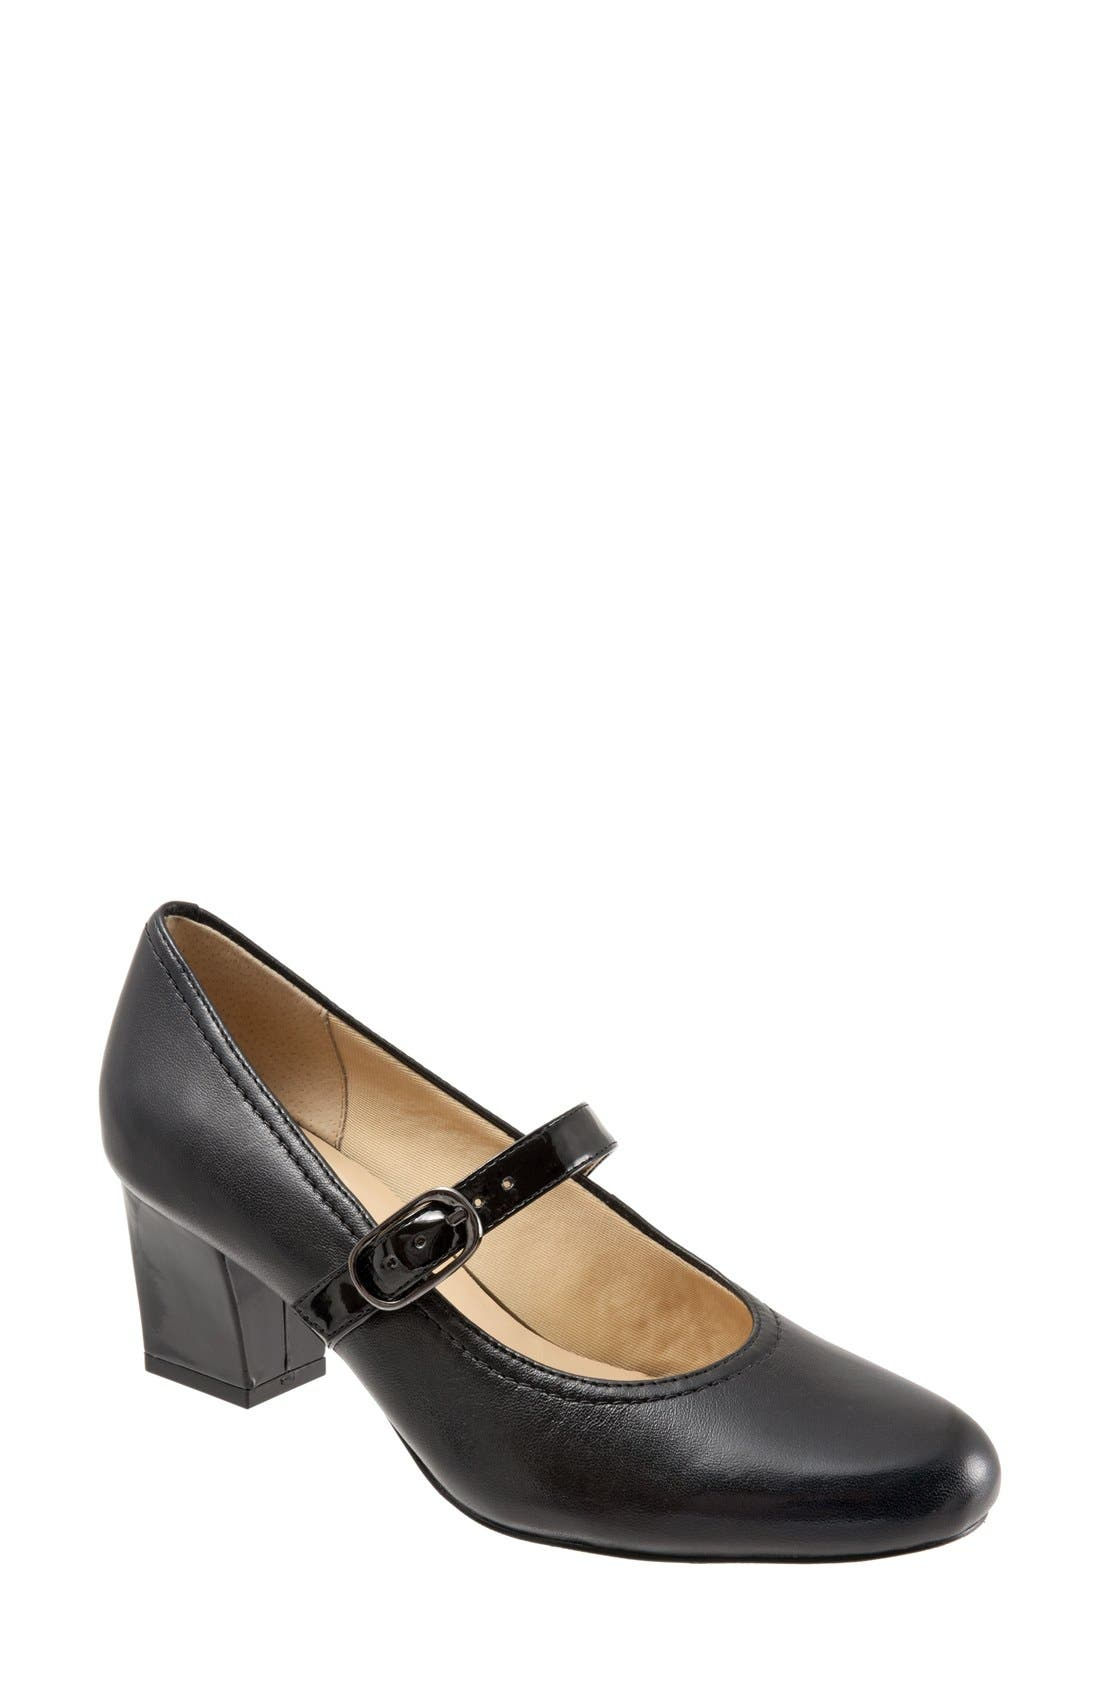 TROTTERS, 'Candice' Mary Jane Pump, Main thumbnail 1, color, BLACK LEATHER